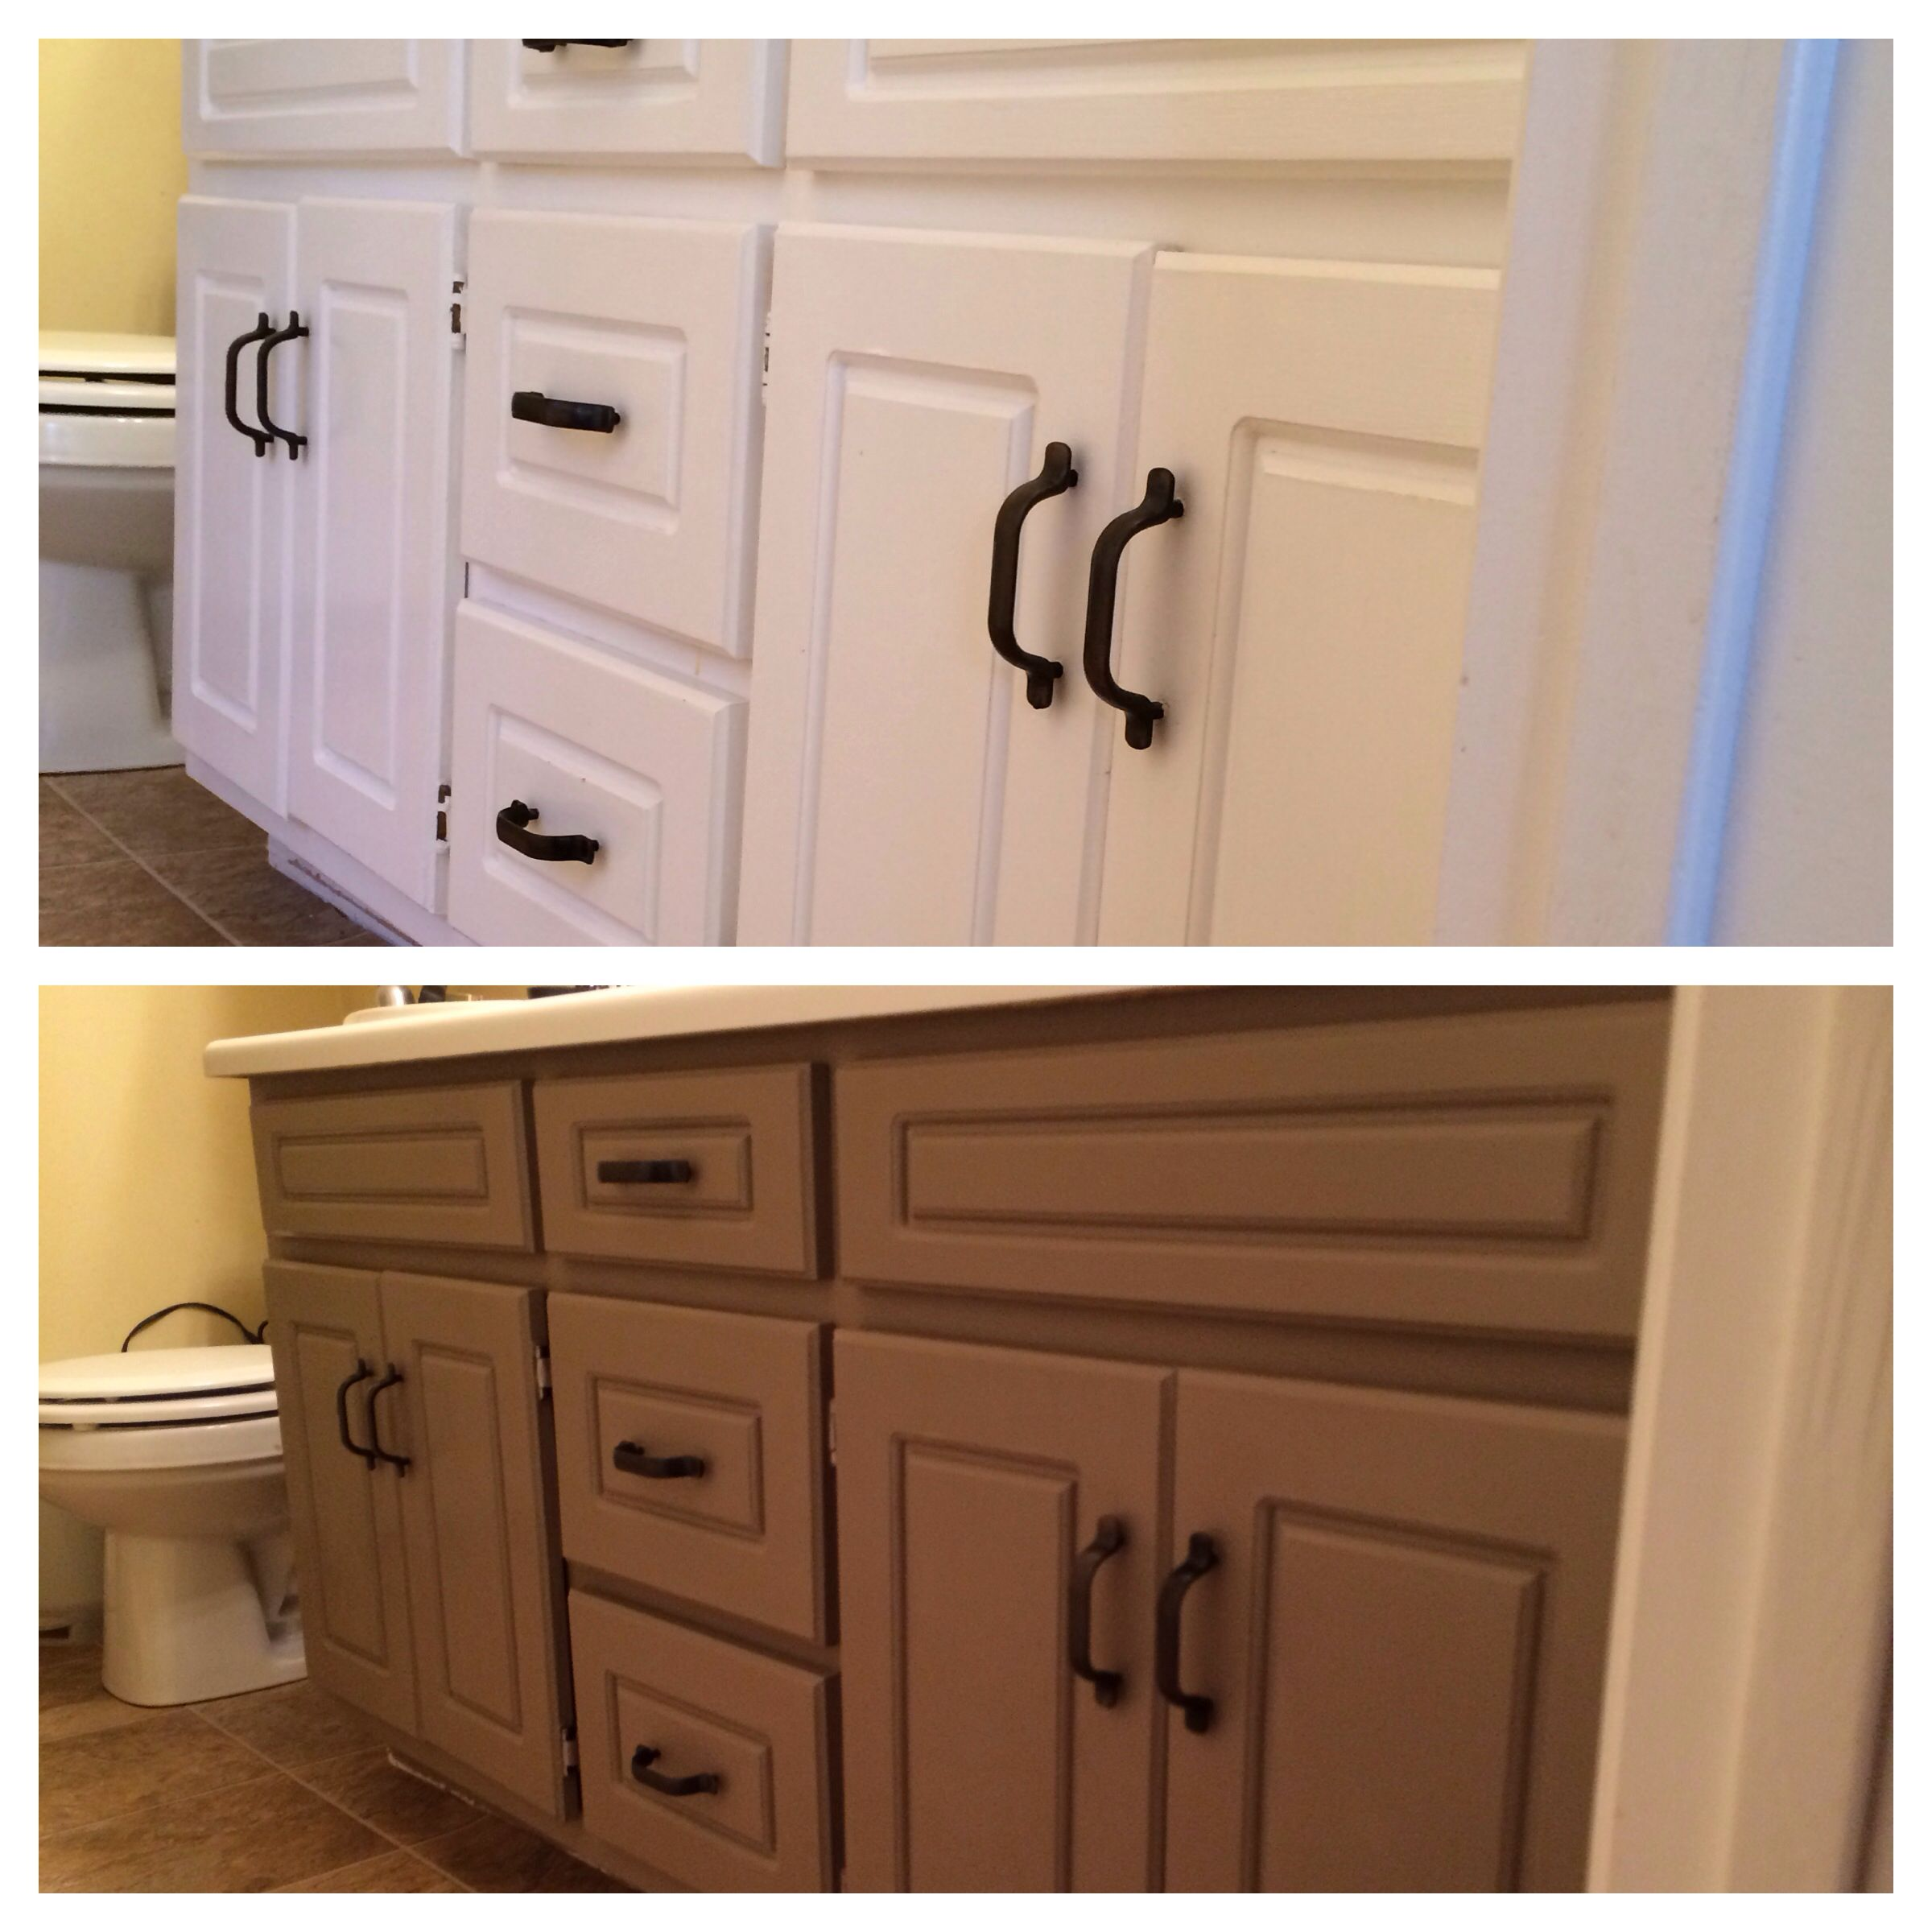 Bathroom vanity makeover with annie sloan chalk paint - My Bathroom Vanity Makeover Using Annie Sloan Chalk Paint In Coco